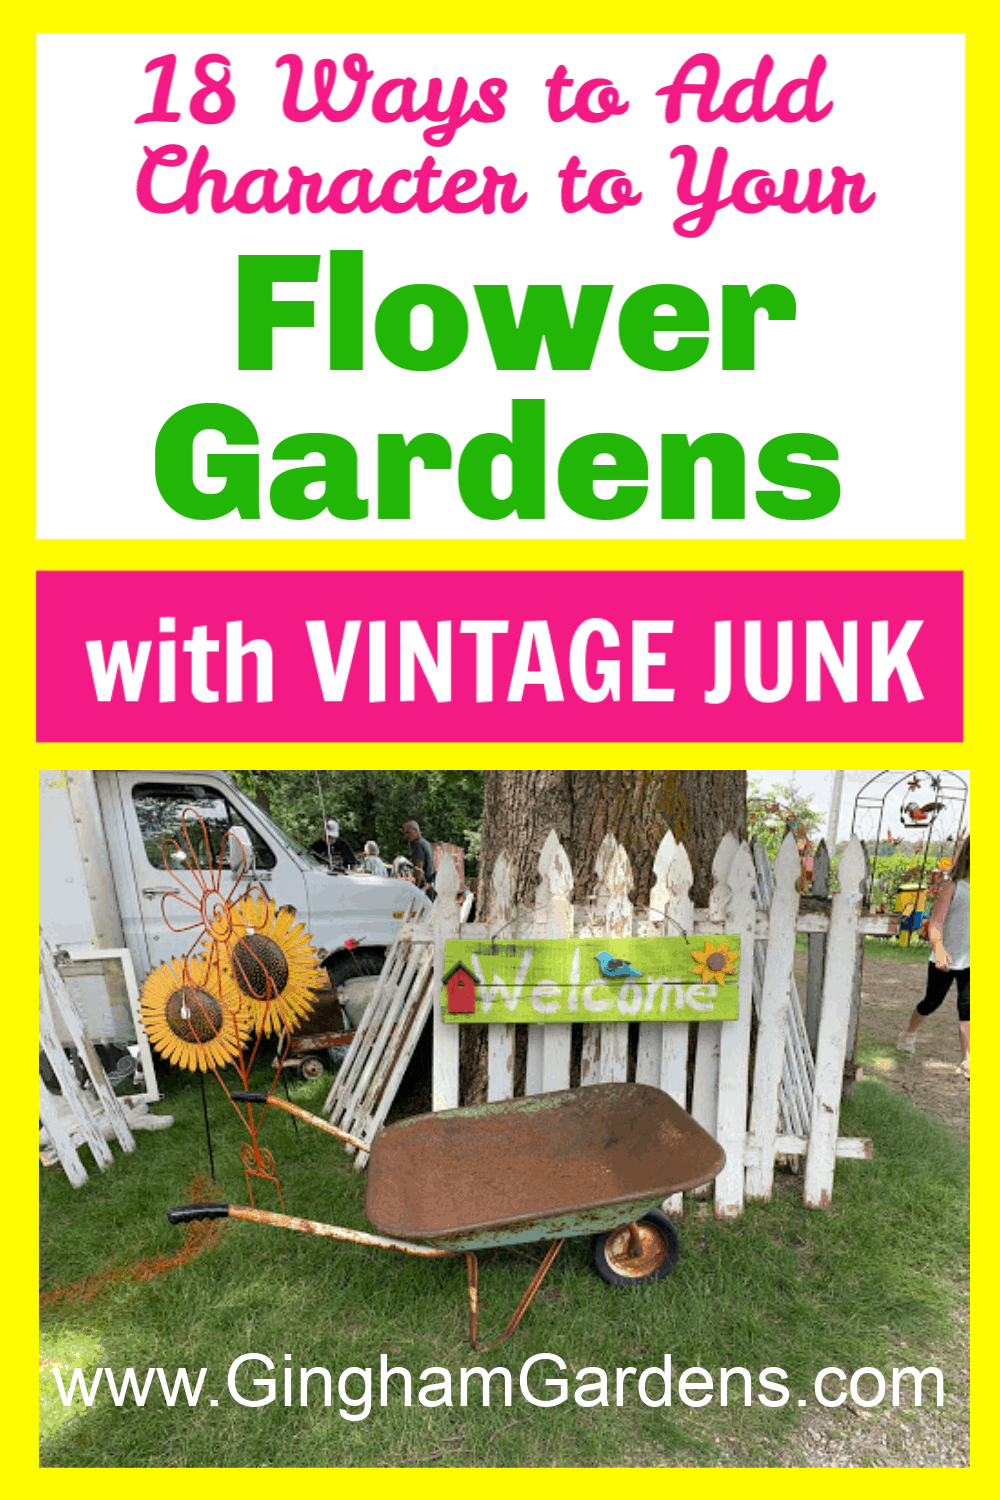 Image of Garden Decor Junk at a Flea Market with text overlay 18 ways to add character to your flower gardens with Vintage junk